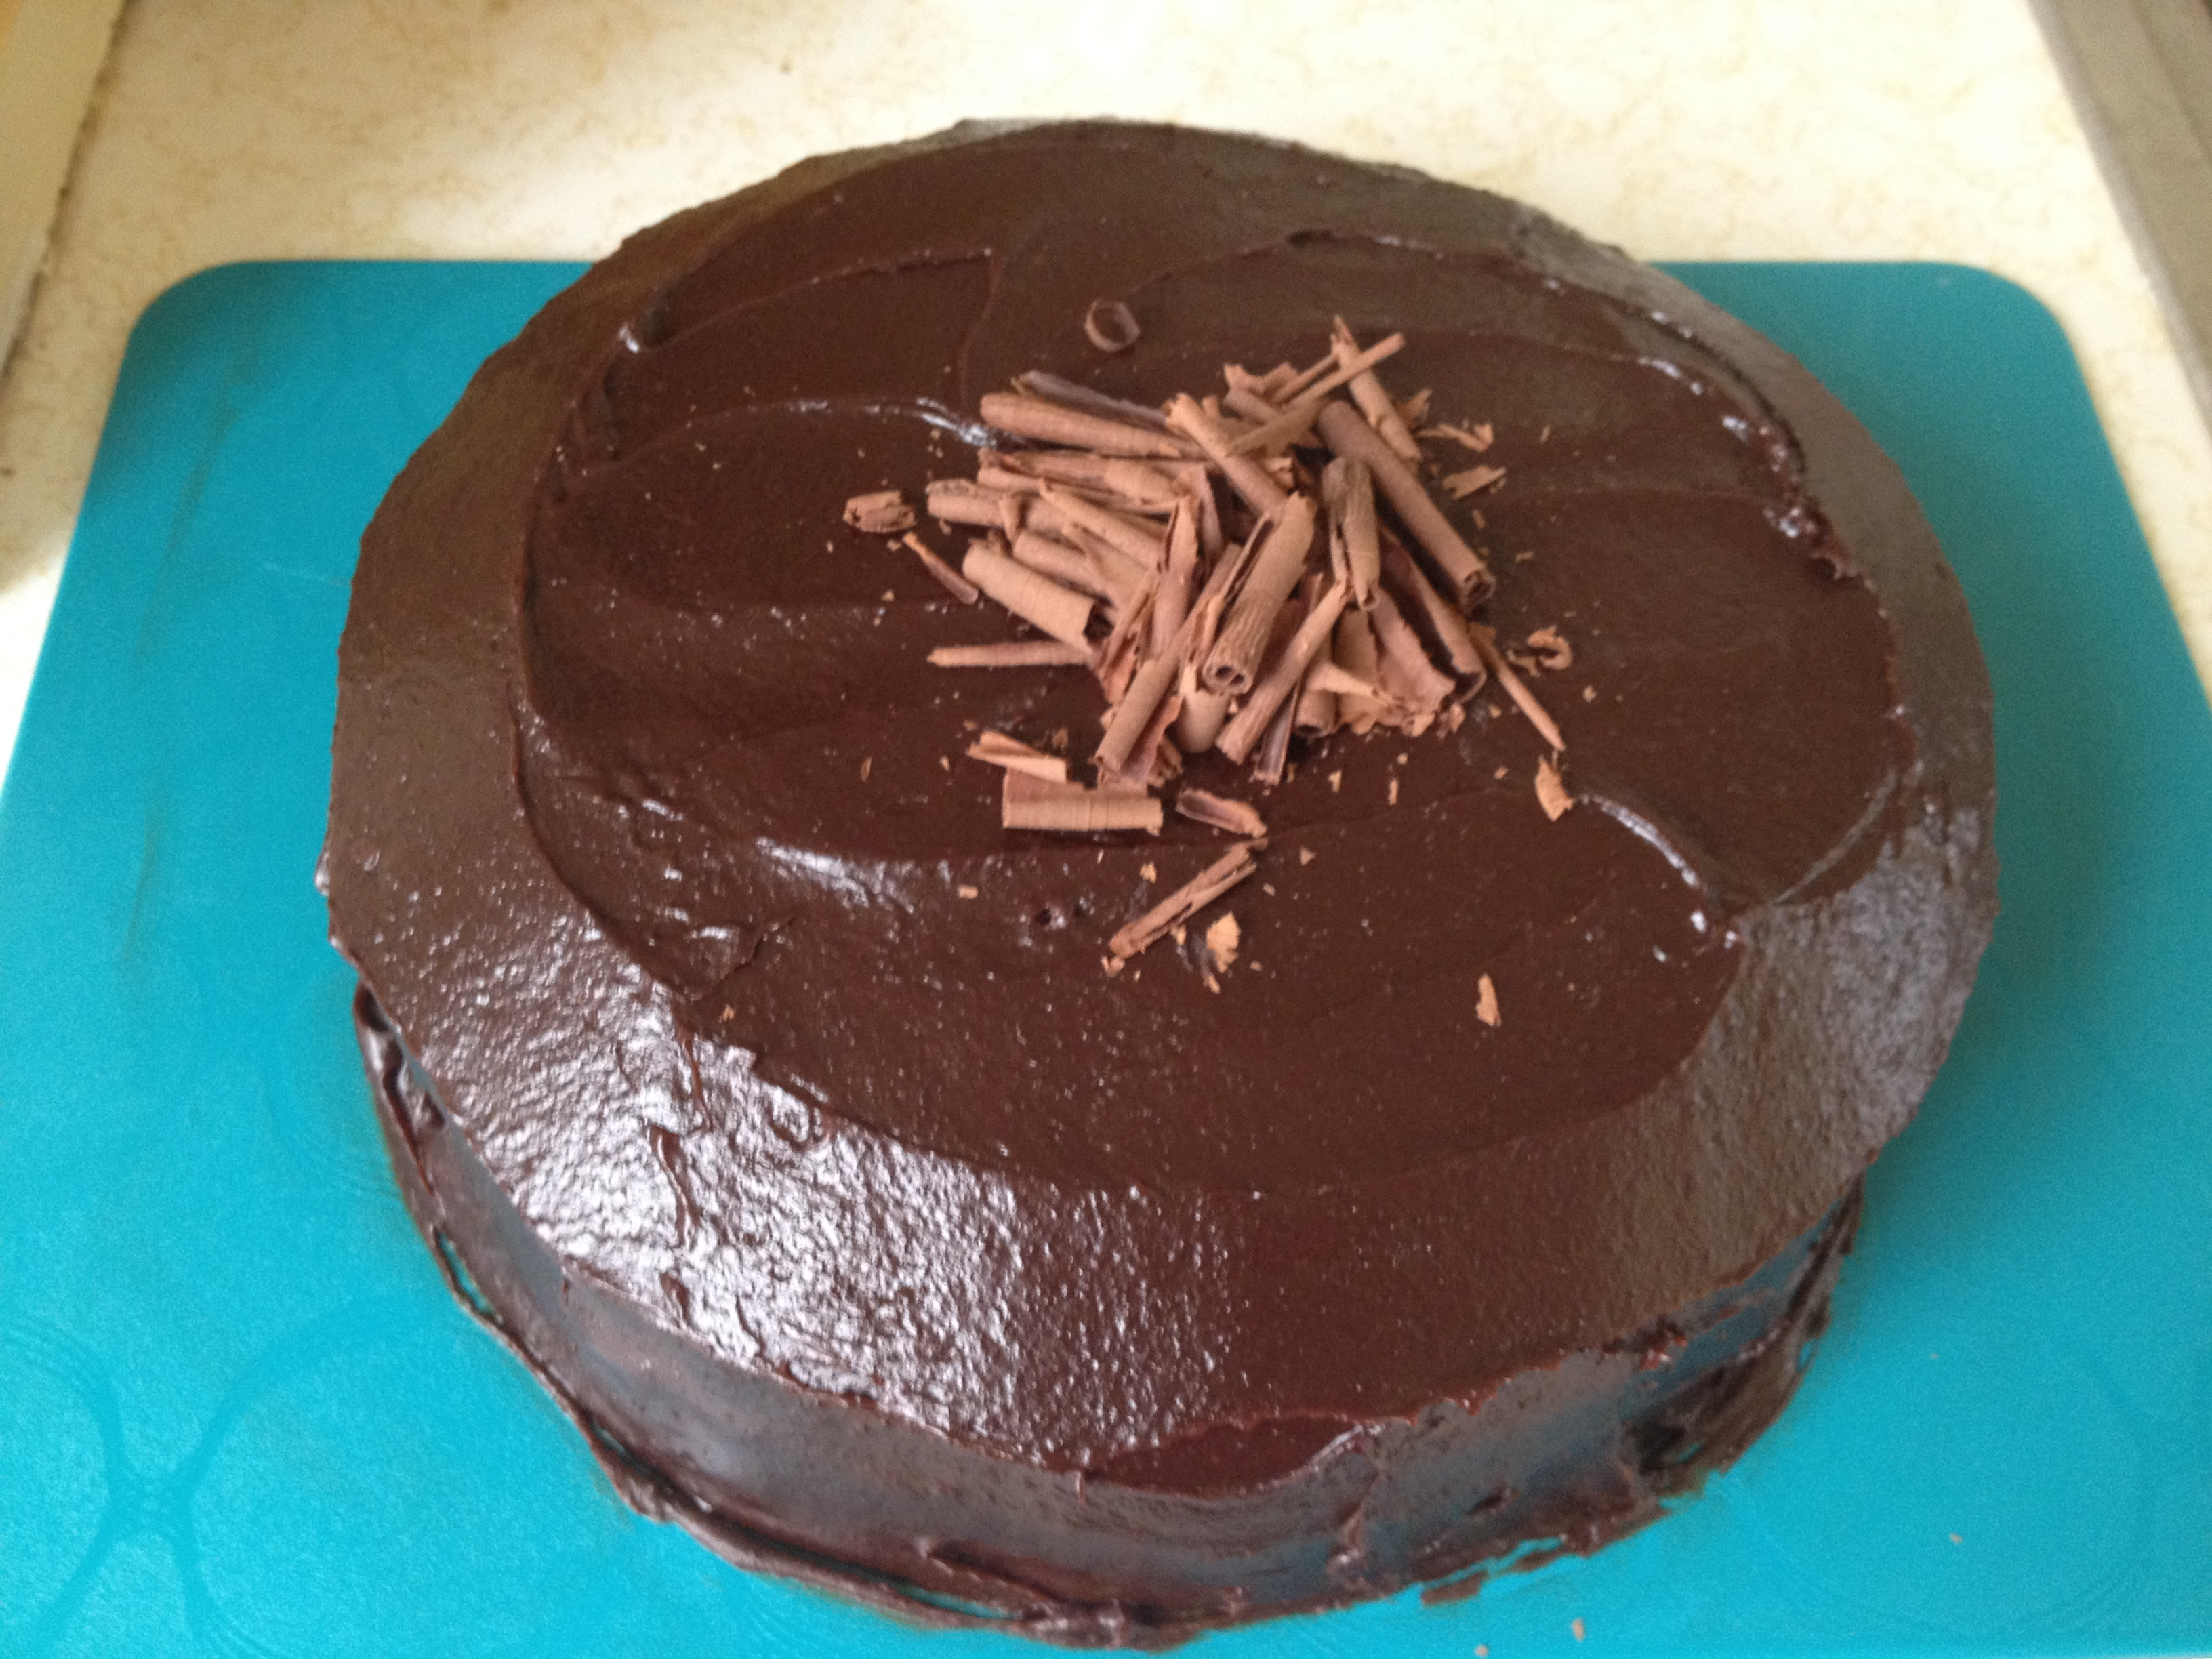 This recipe for Chocolate Mocha Cake with Mocha Fudge Frosting, by Ali ...